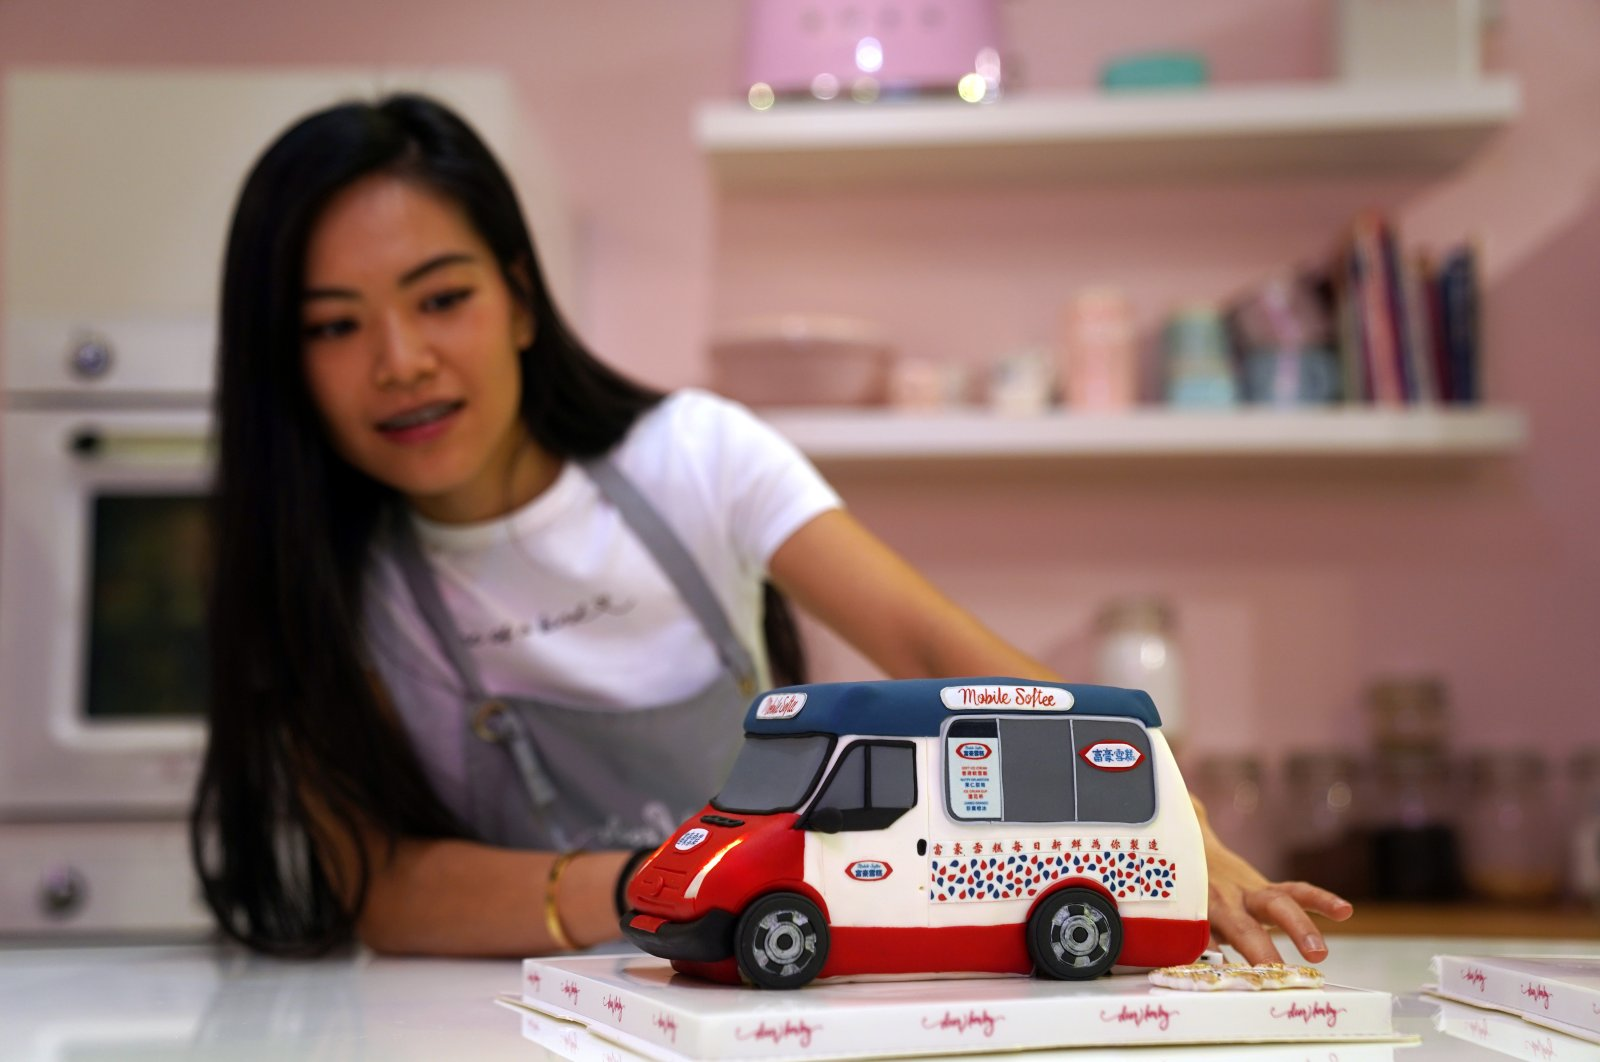 Alison Chan, co-owner of Dear Harley Cake Studio, shows one of the illusion cakes designed to look like a local mobile ice cream truck at the studio in Hong Kong, China, Aug. 25, 2020. (Reuters Photo)